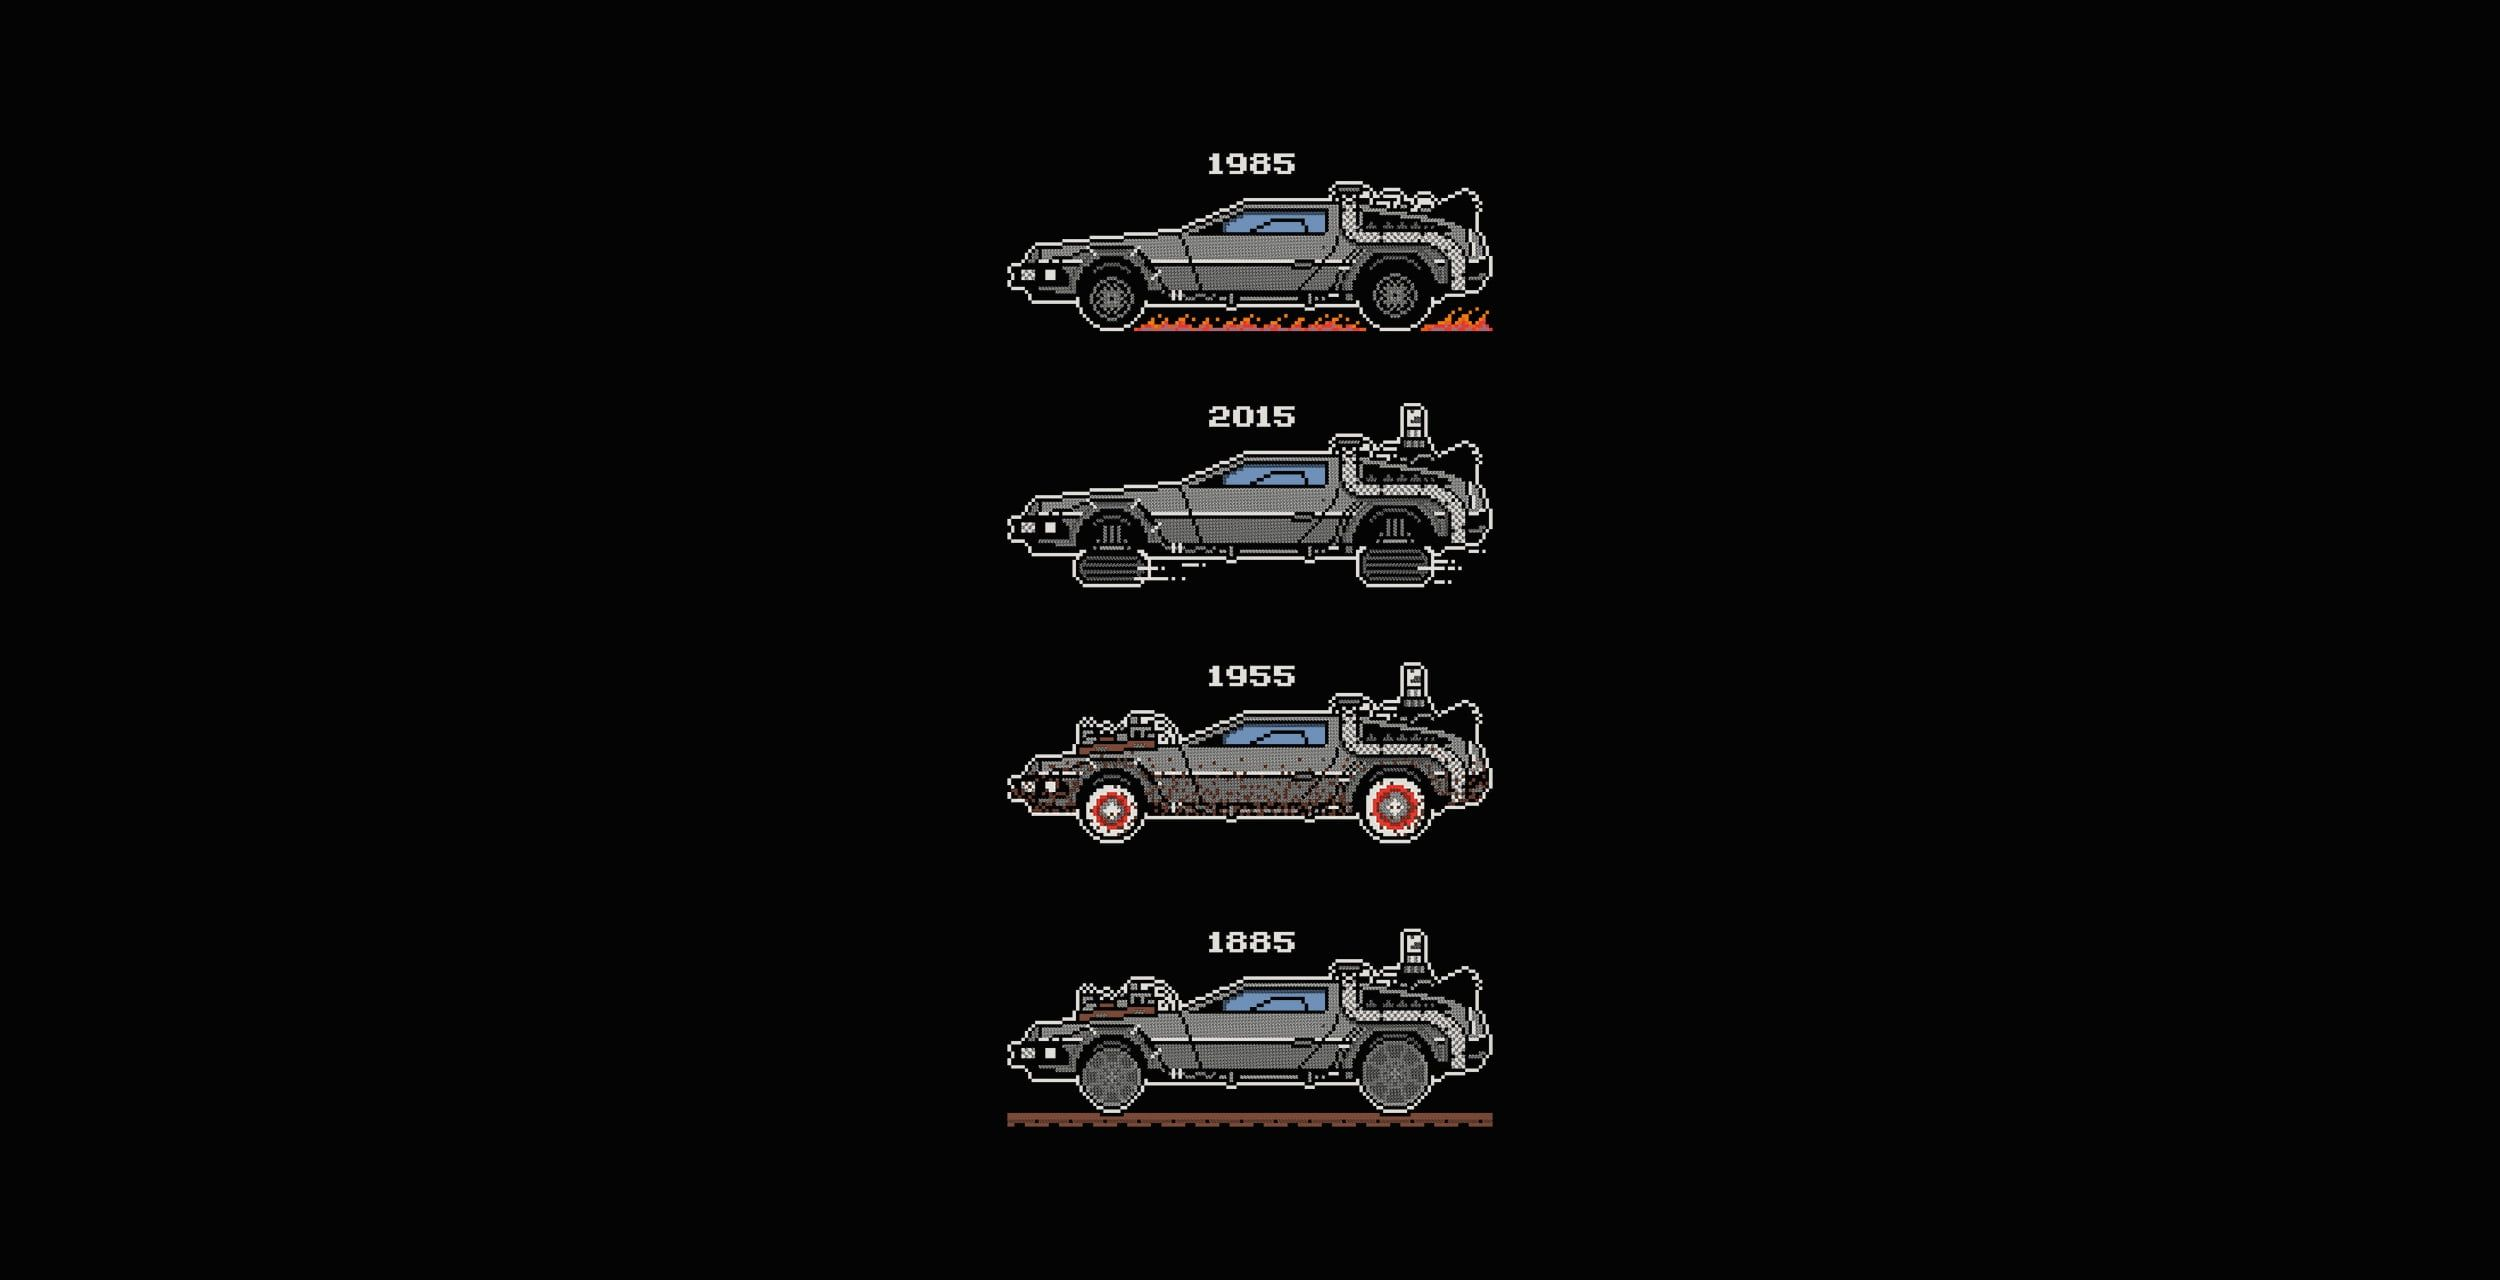 Minimalism Artwork Simple Background Back To The Future Time Machine Movies Car Vehicle Delorean 1080p Wa Future Wallpaper Simple Backgrounds Wallpaper